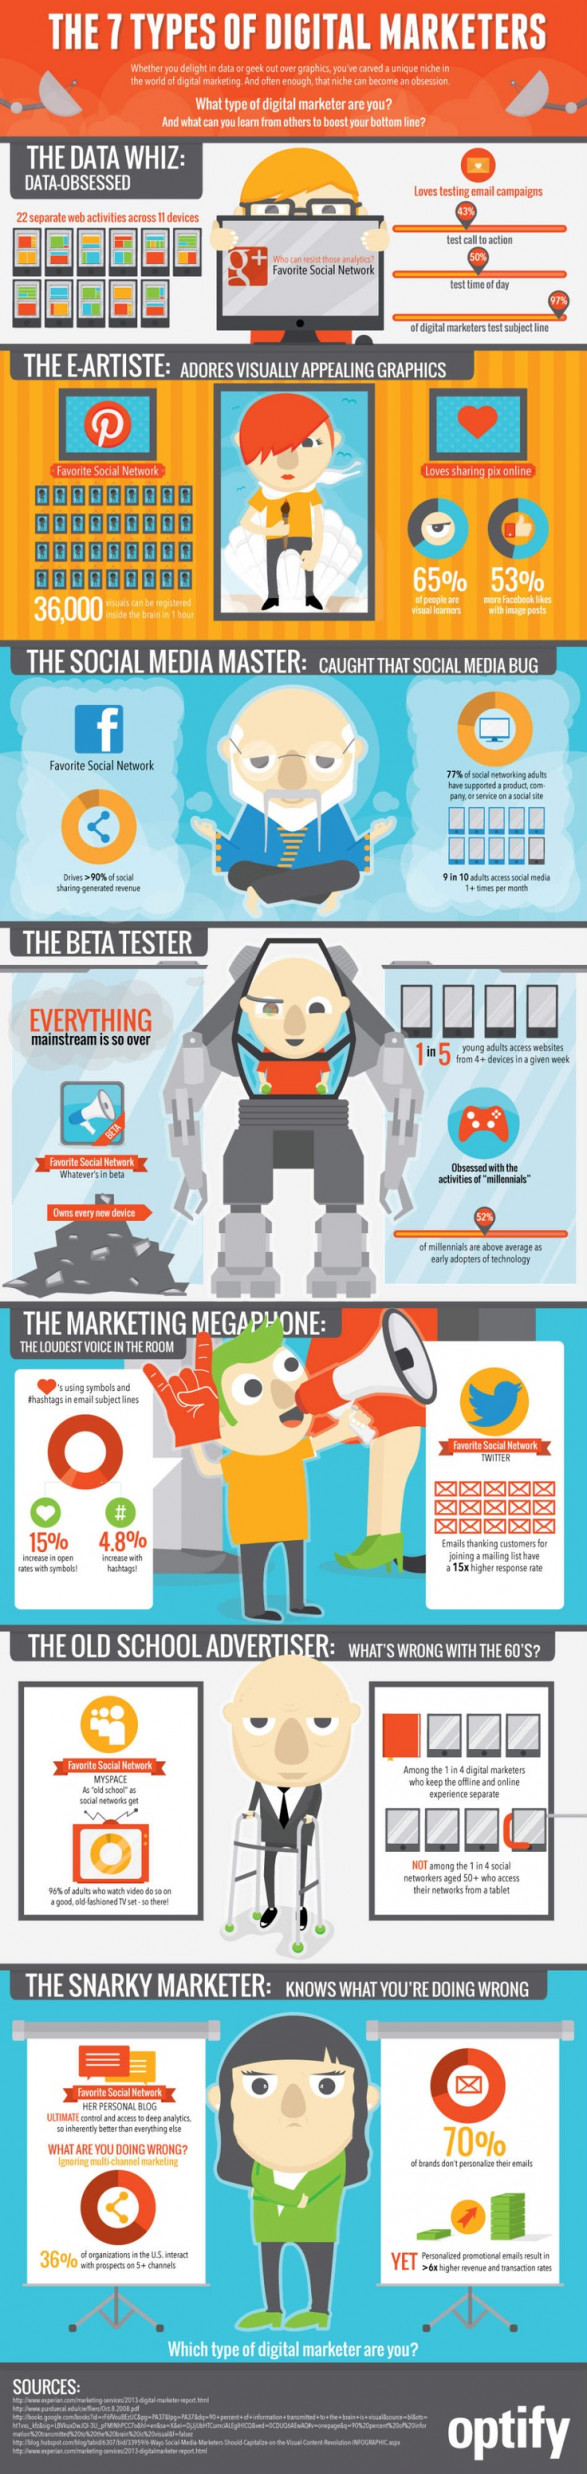 The 7 Types of Digital Marketer